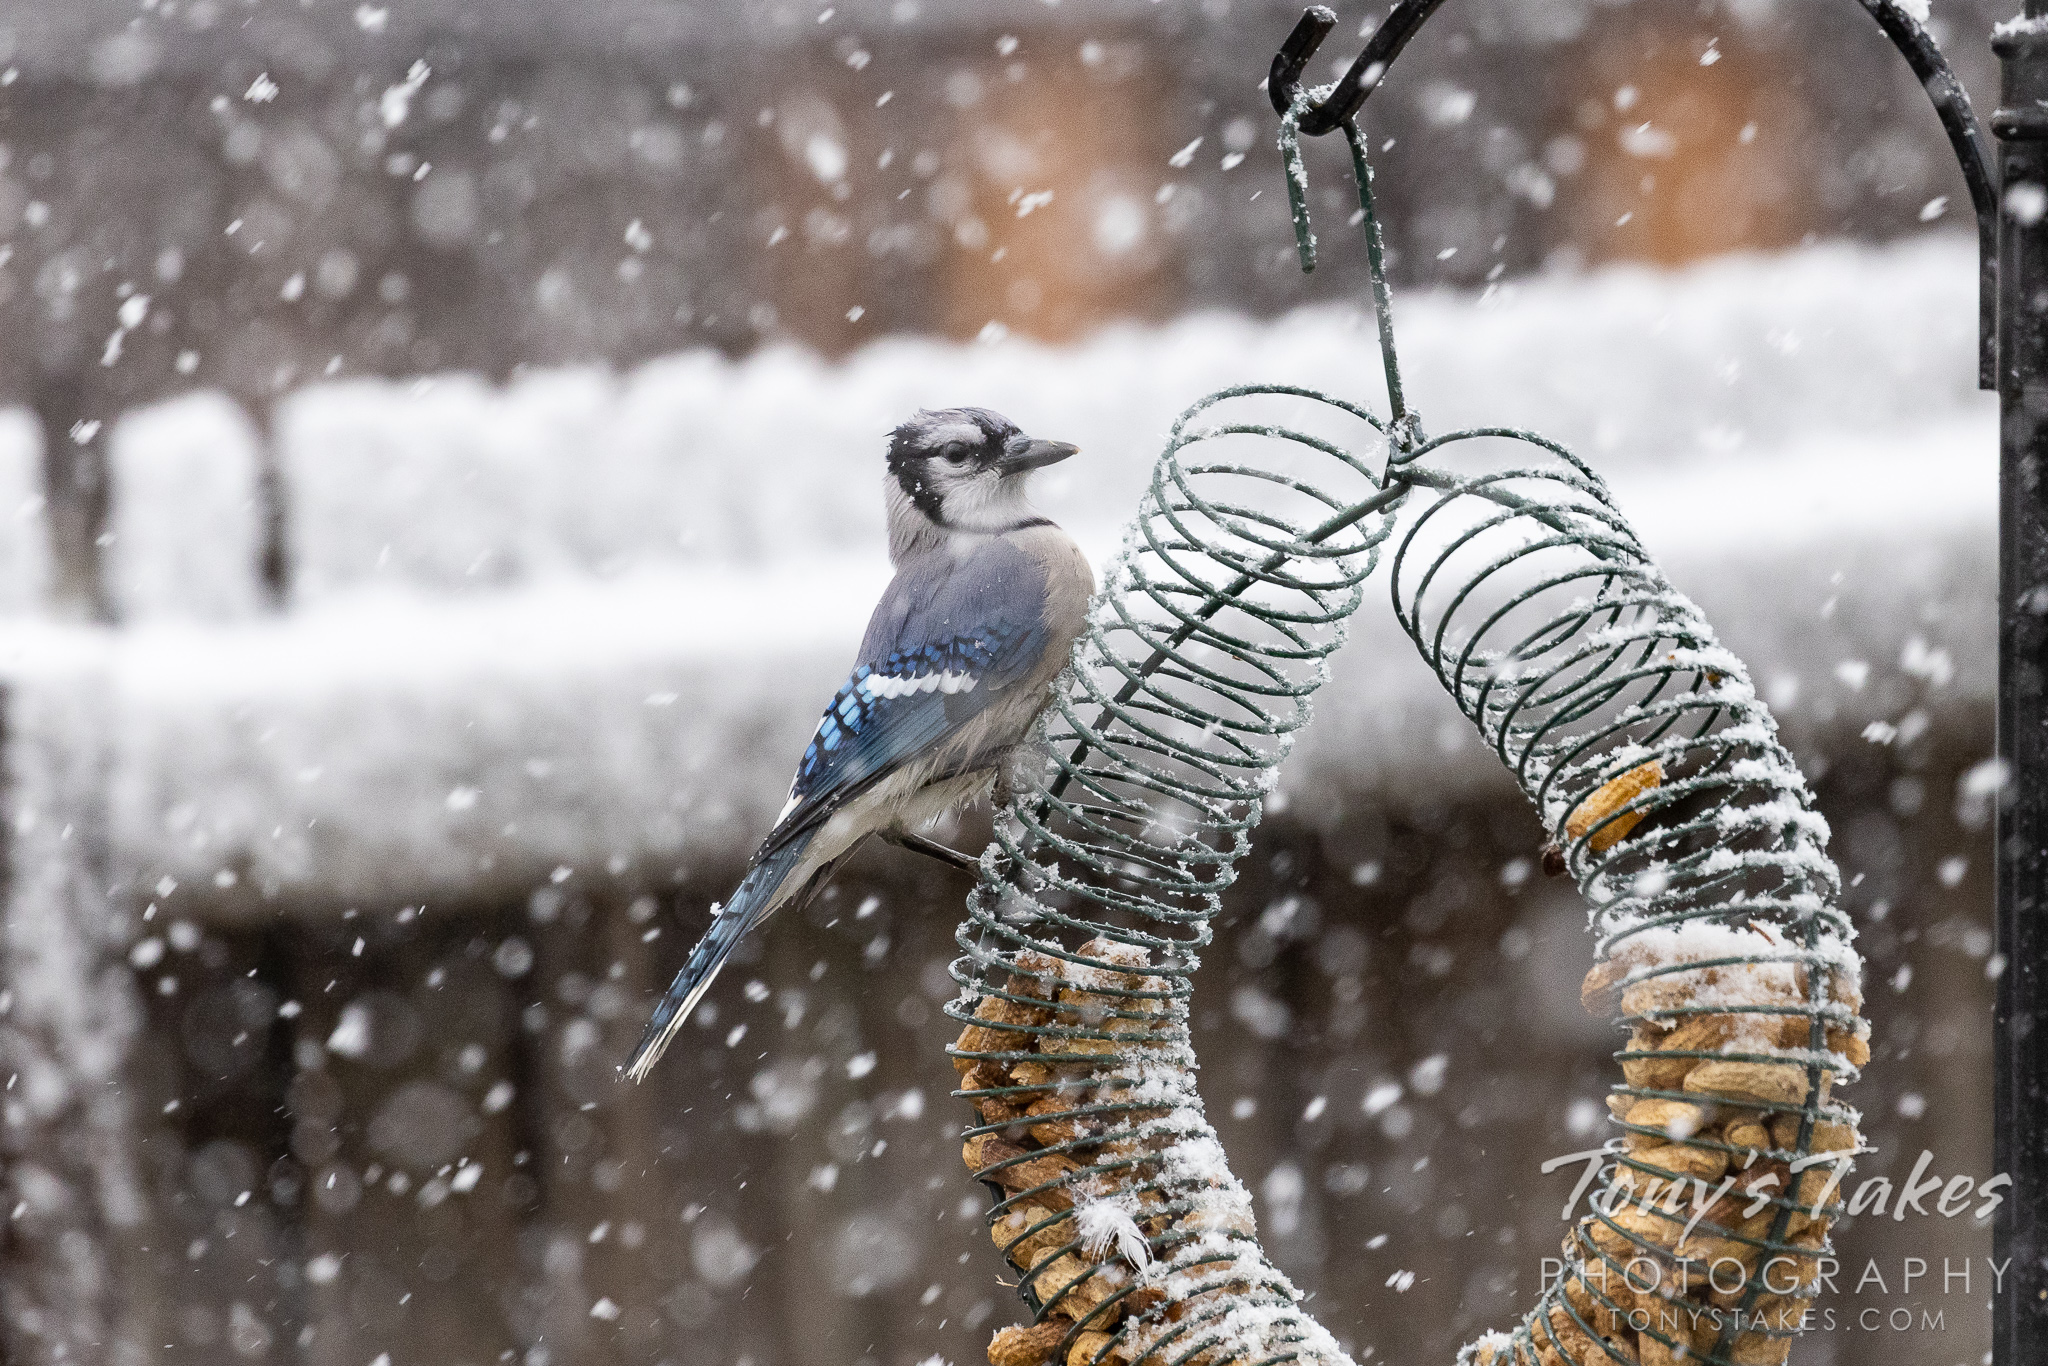 Blue jays and flickers enjoy the first snowfall of the season